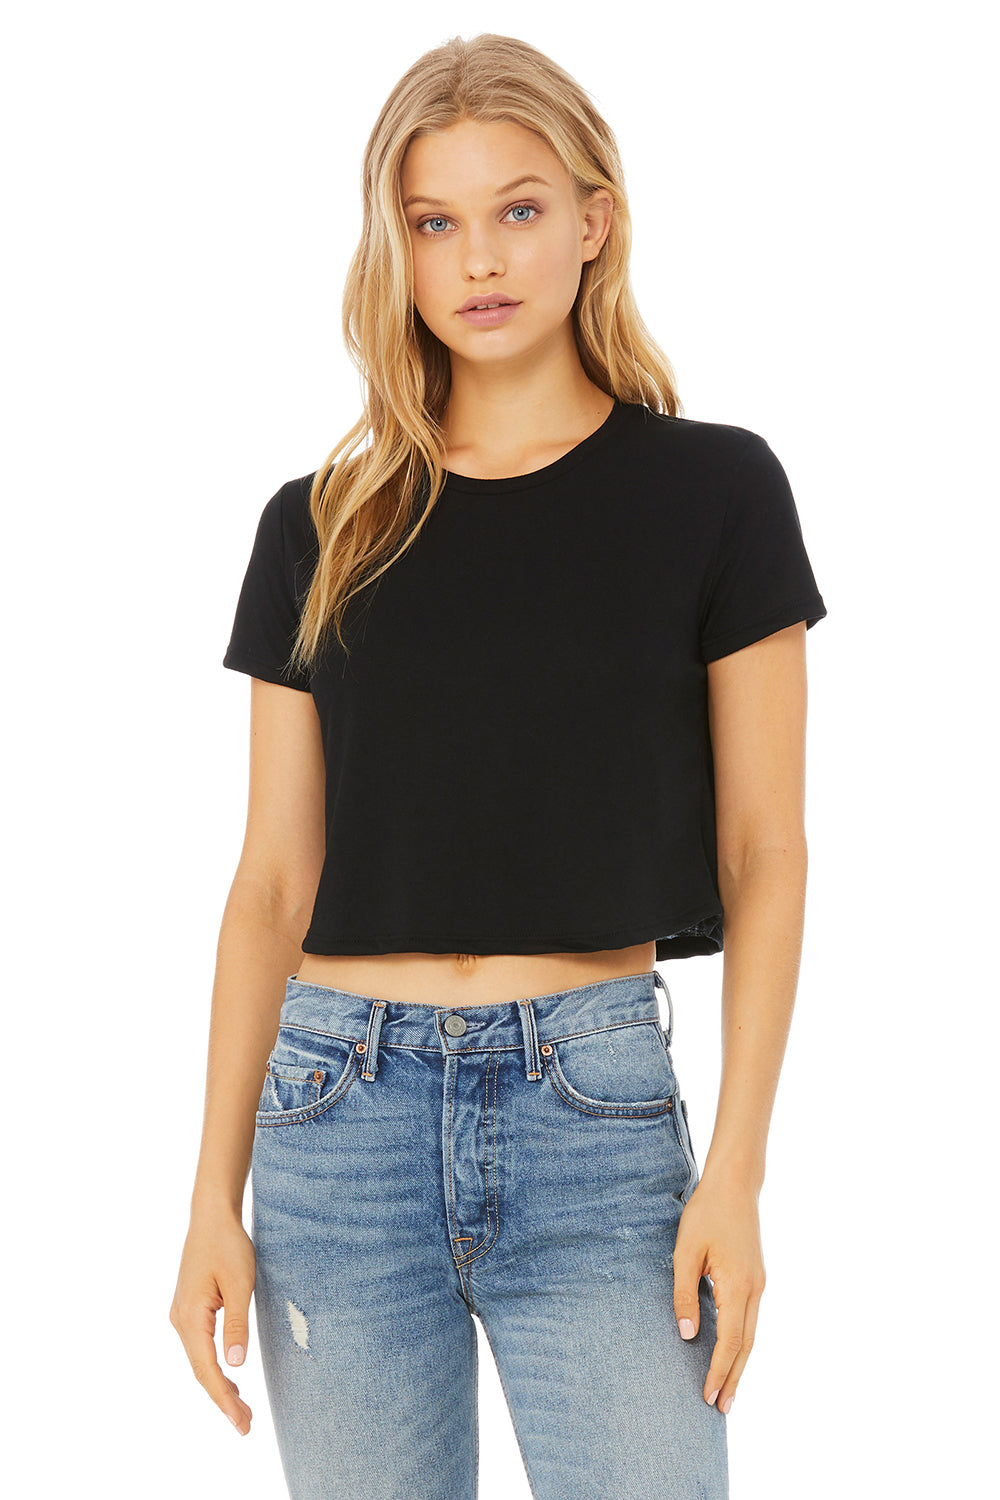 Bella + Canvas B8882 Womens Floy Cropped Short Sleeve Crewneck T-Shirt Black Front